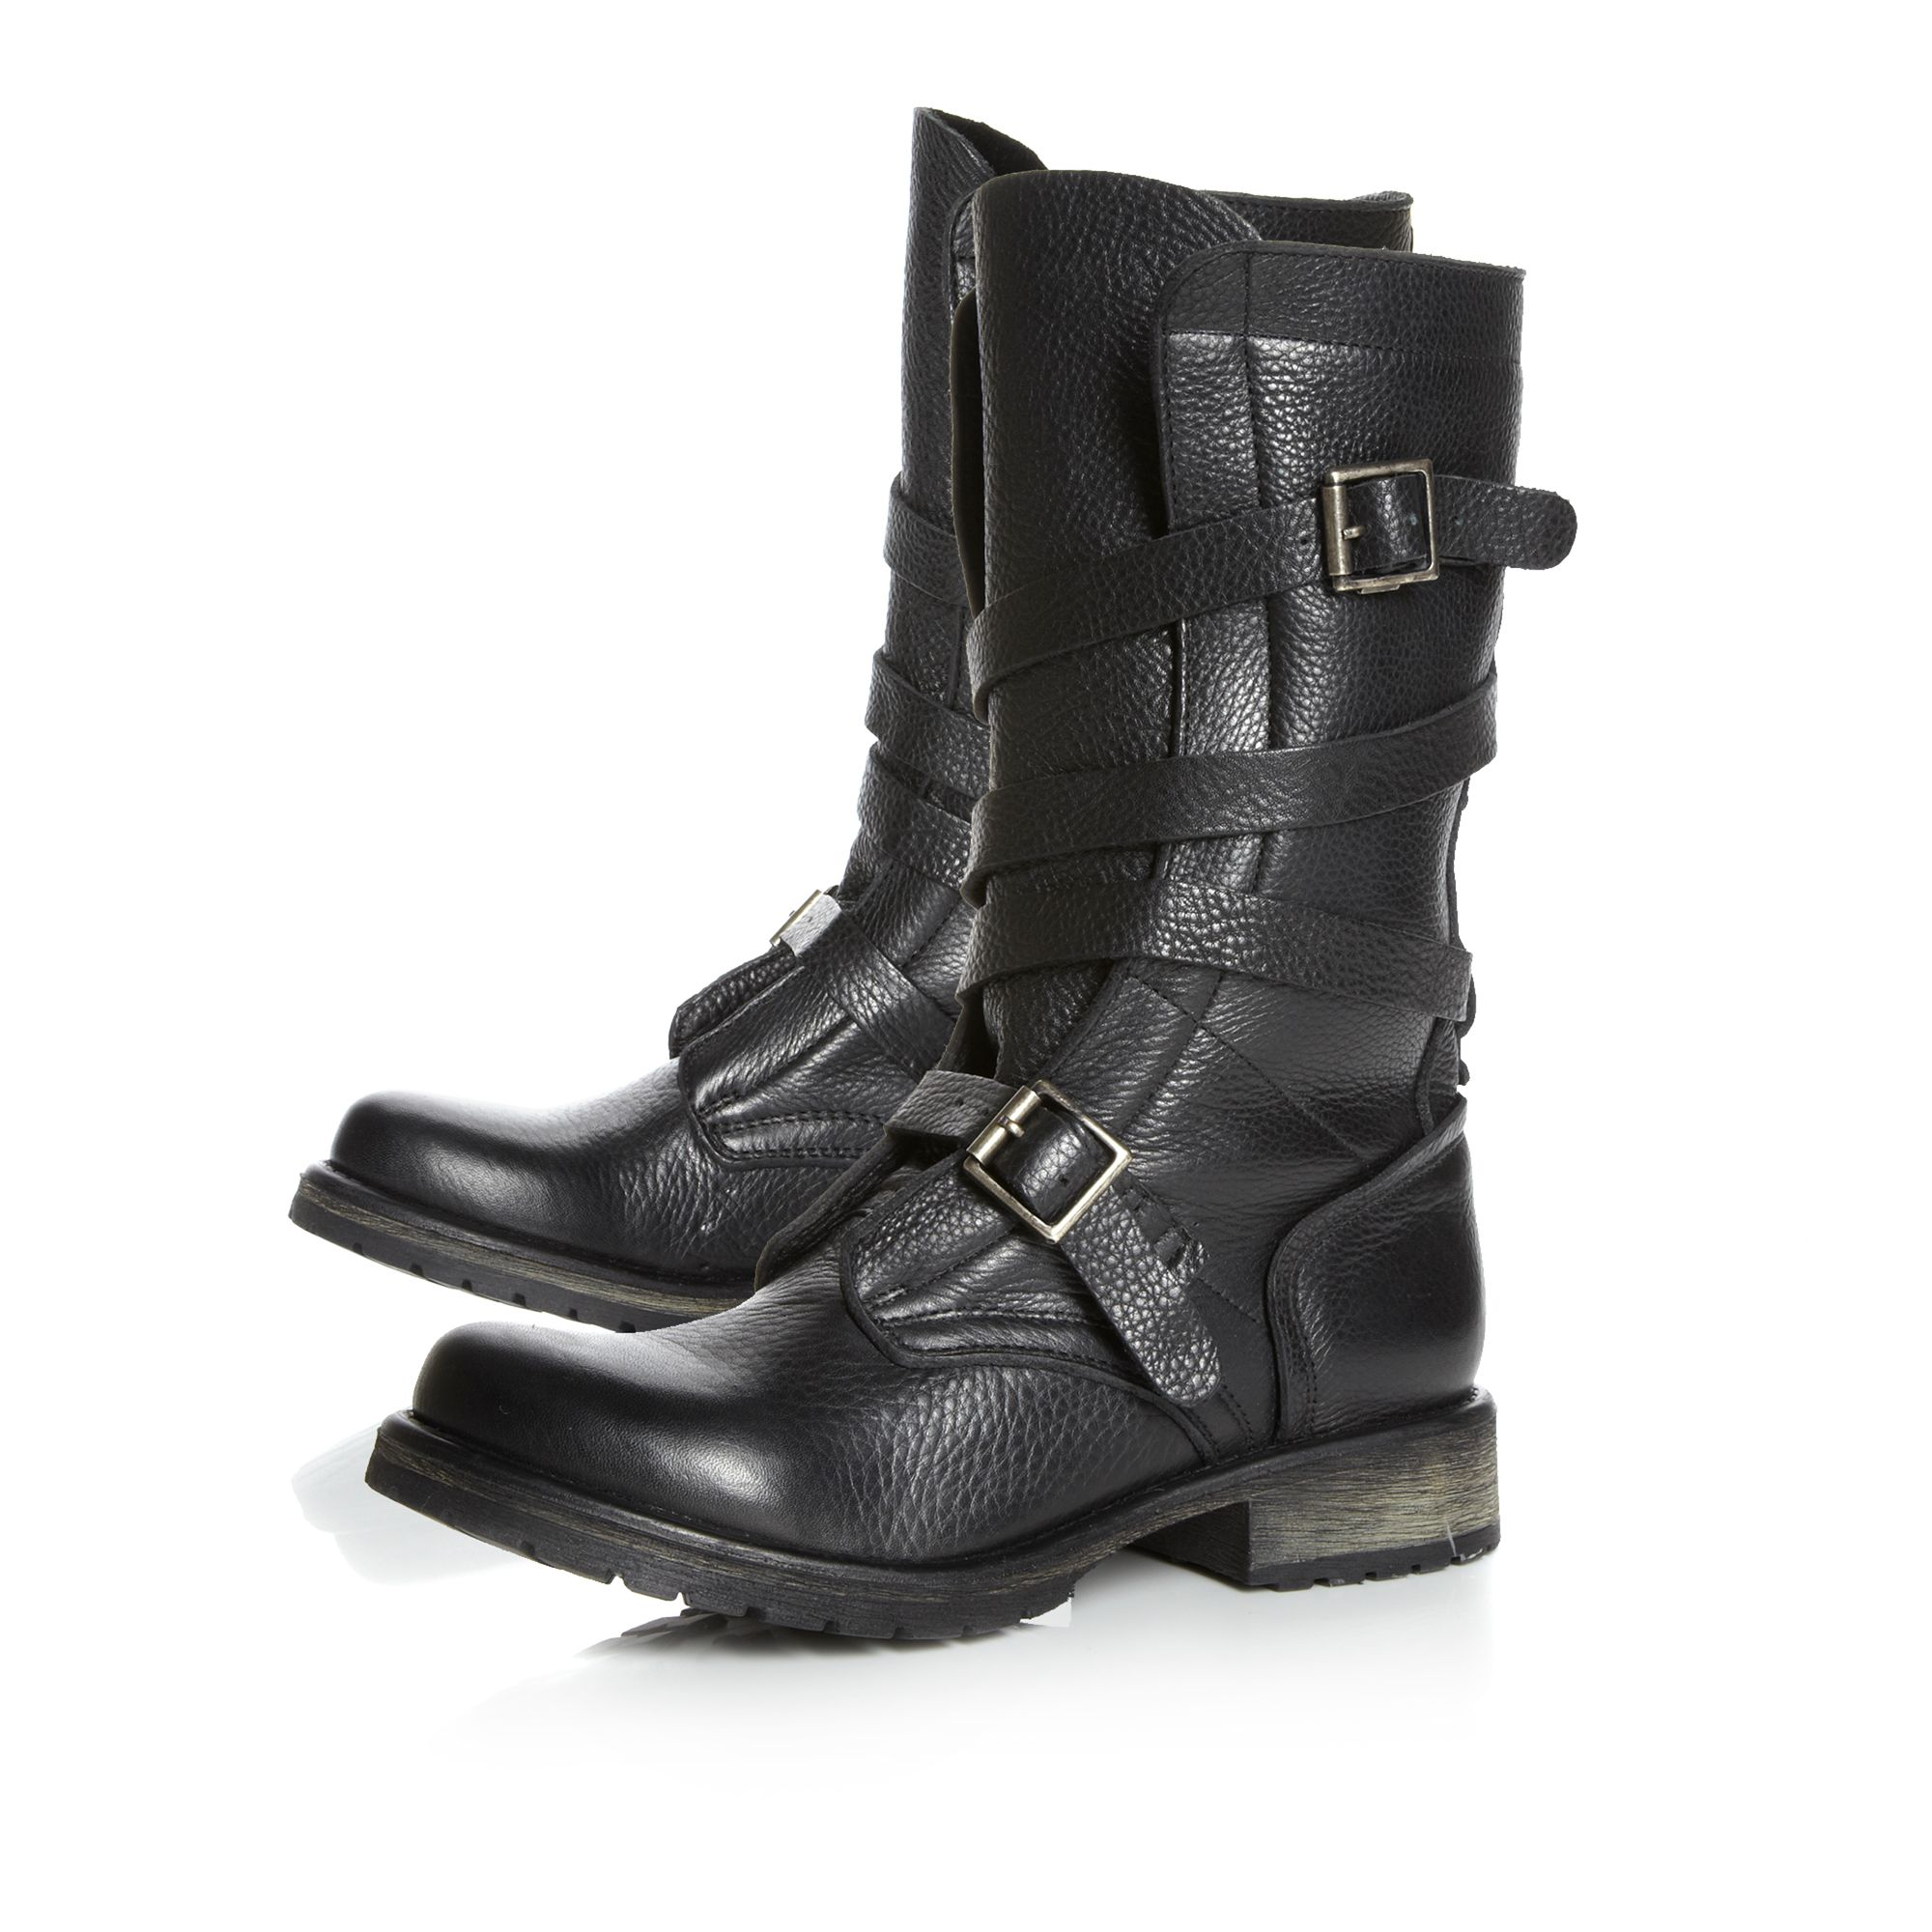 Steve madden Banddit Sm Strappy Biker Boot in Black | Lyst